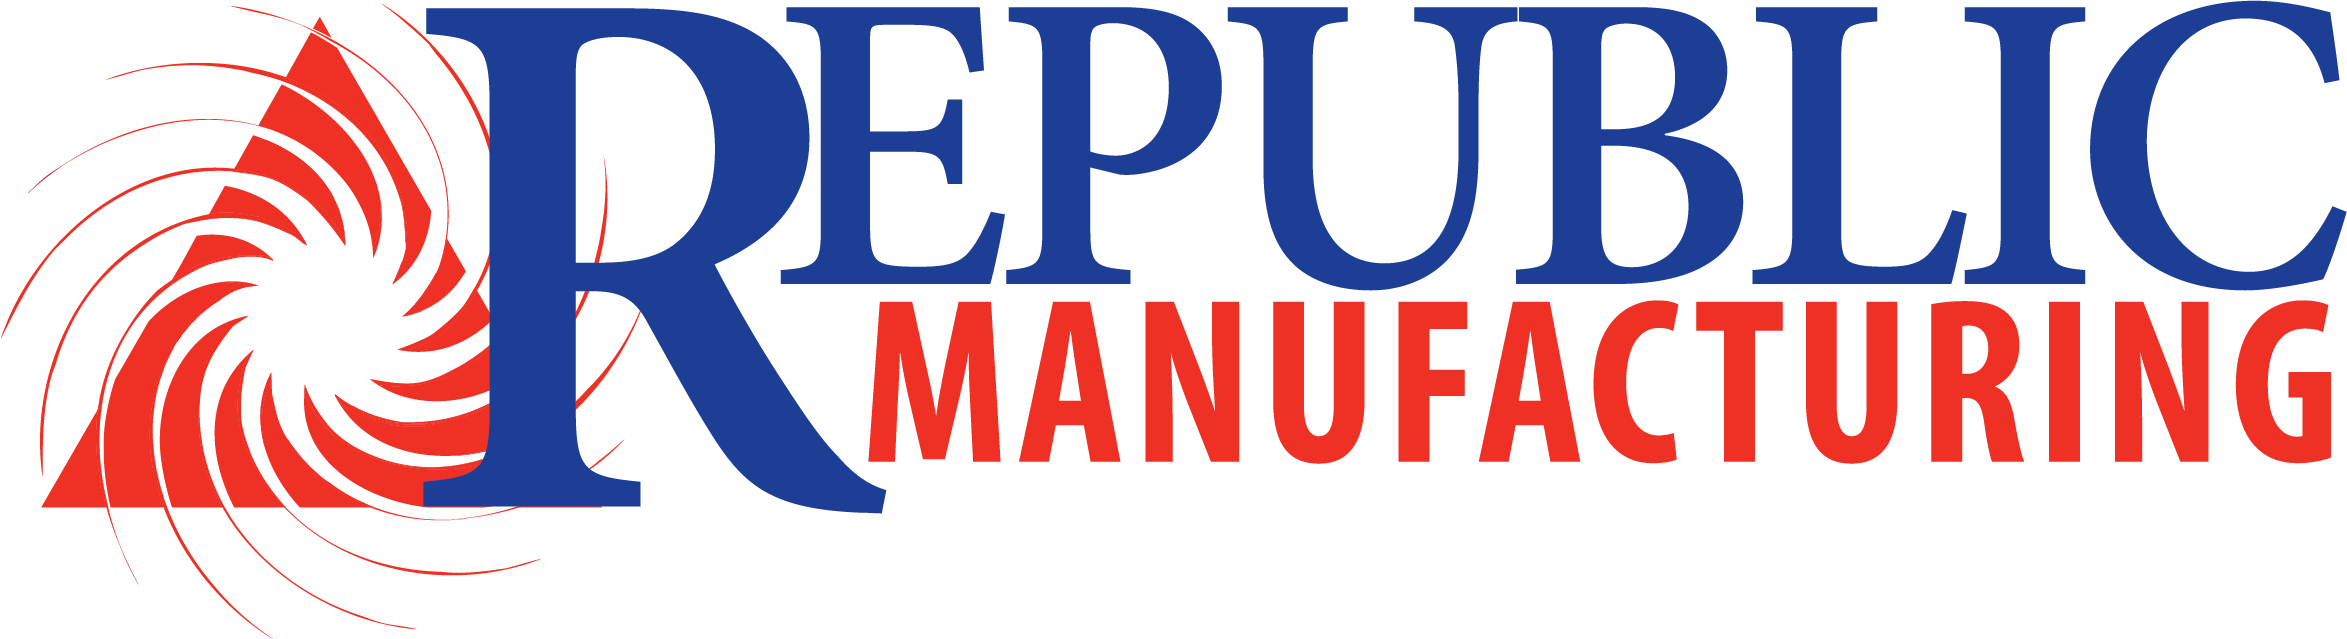 A logo for Republic Manufacturing